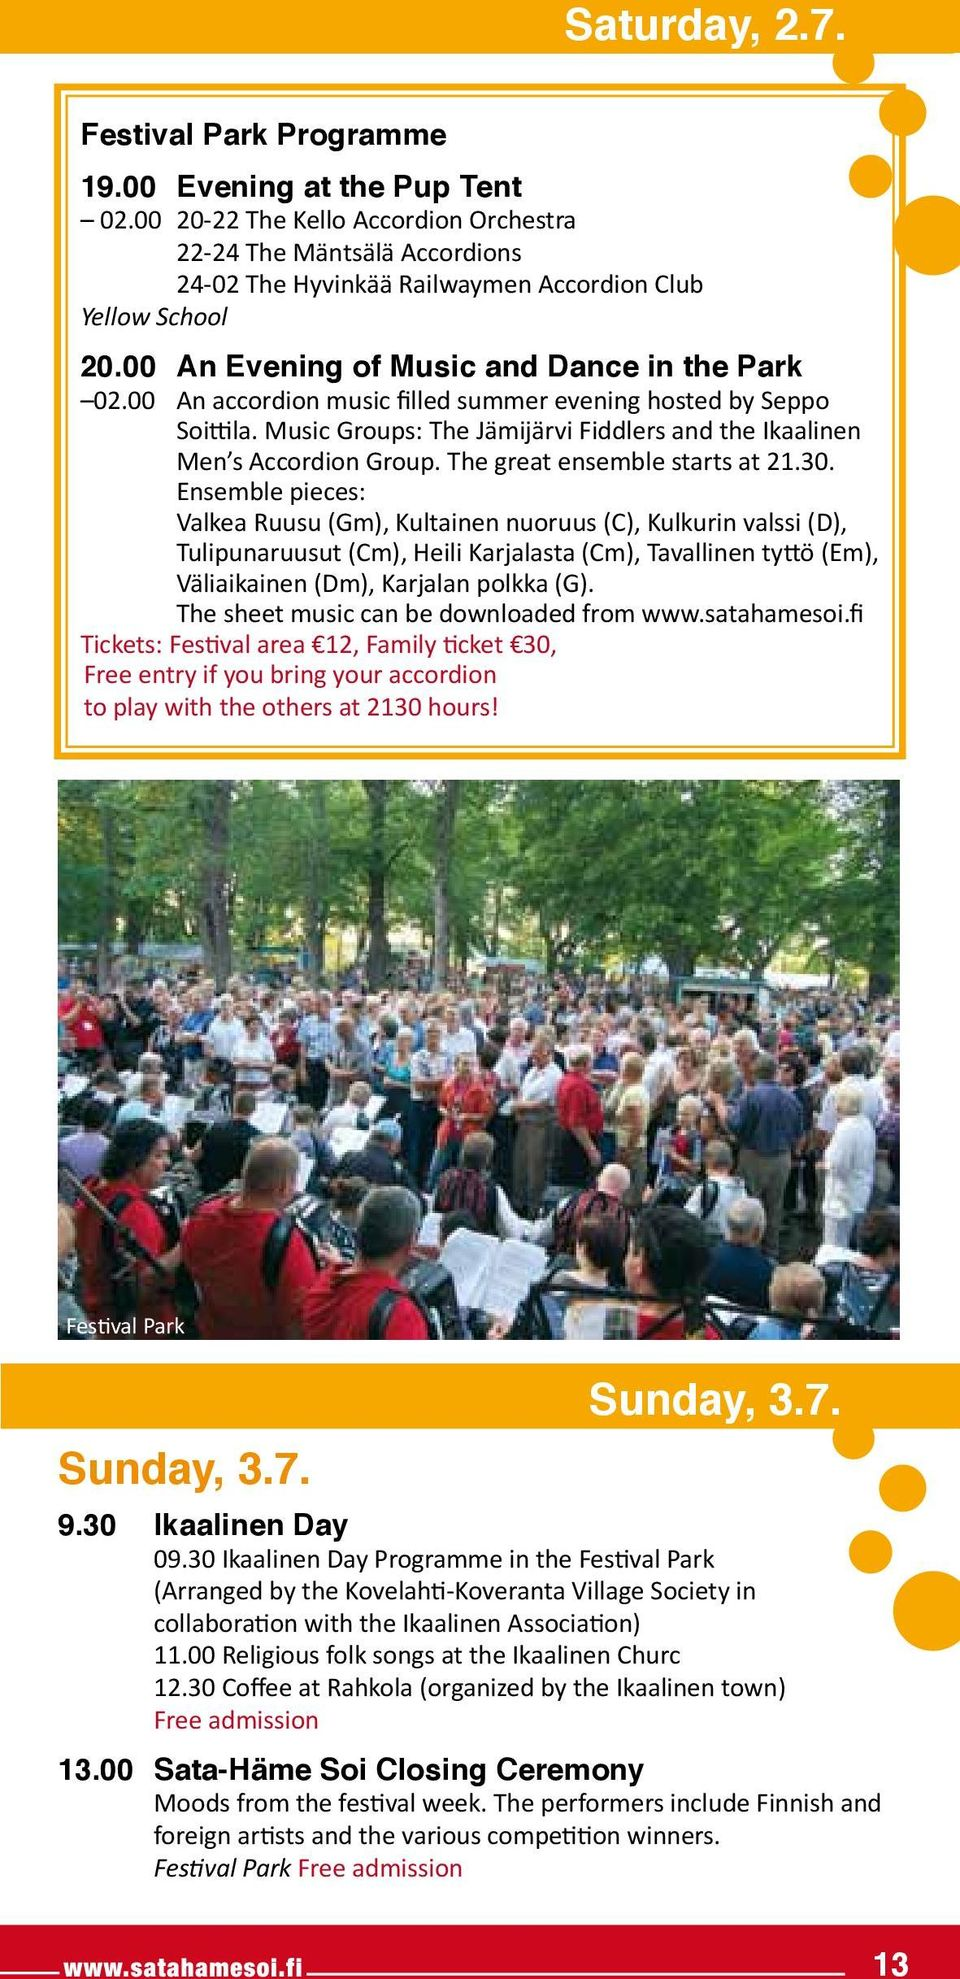 00 An accordion music filled summer evening hosted by Seppo Soittila. Music Groups: The Jämijärvi Fiddlers and the Ikaalinen Men s Accordion Group. The great ensemble starts at 21.30.